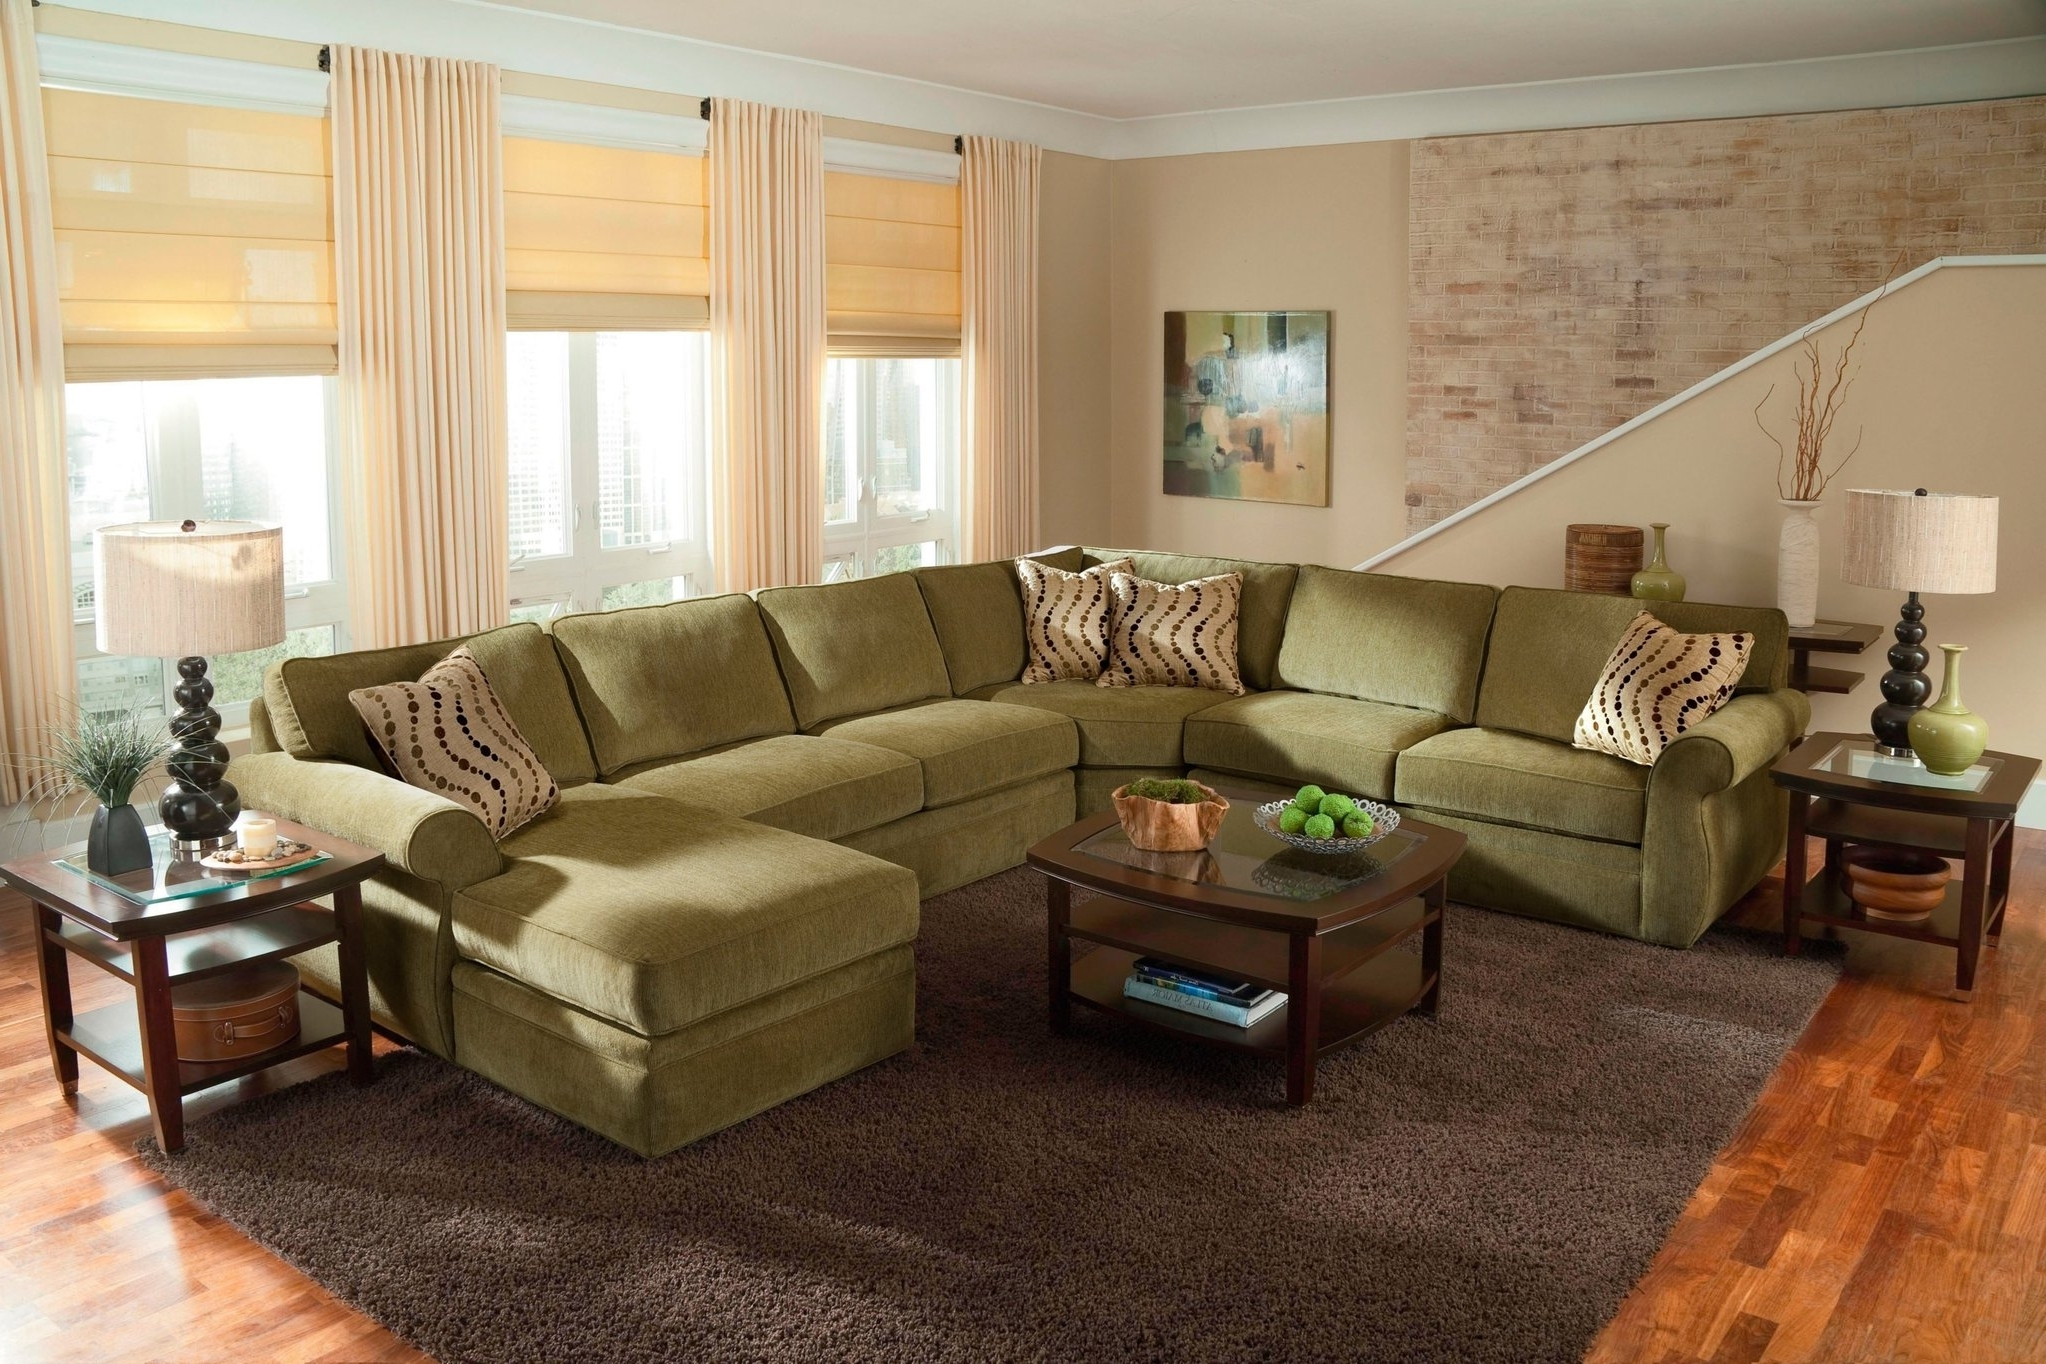 Large Comfortable Sectional Sofas Within Famous Large Scale U Shaped Sectional Sofa Set (View 10 of 20)